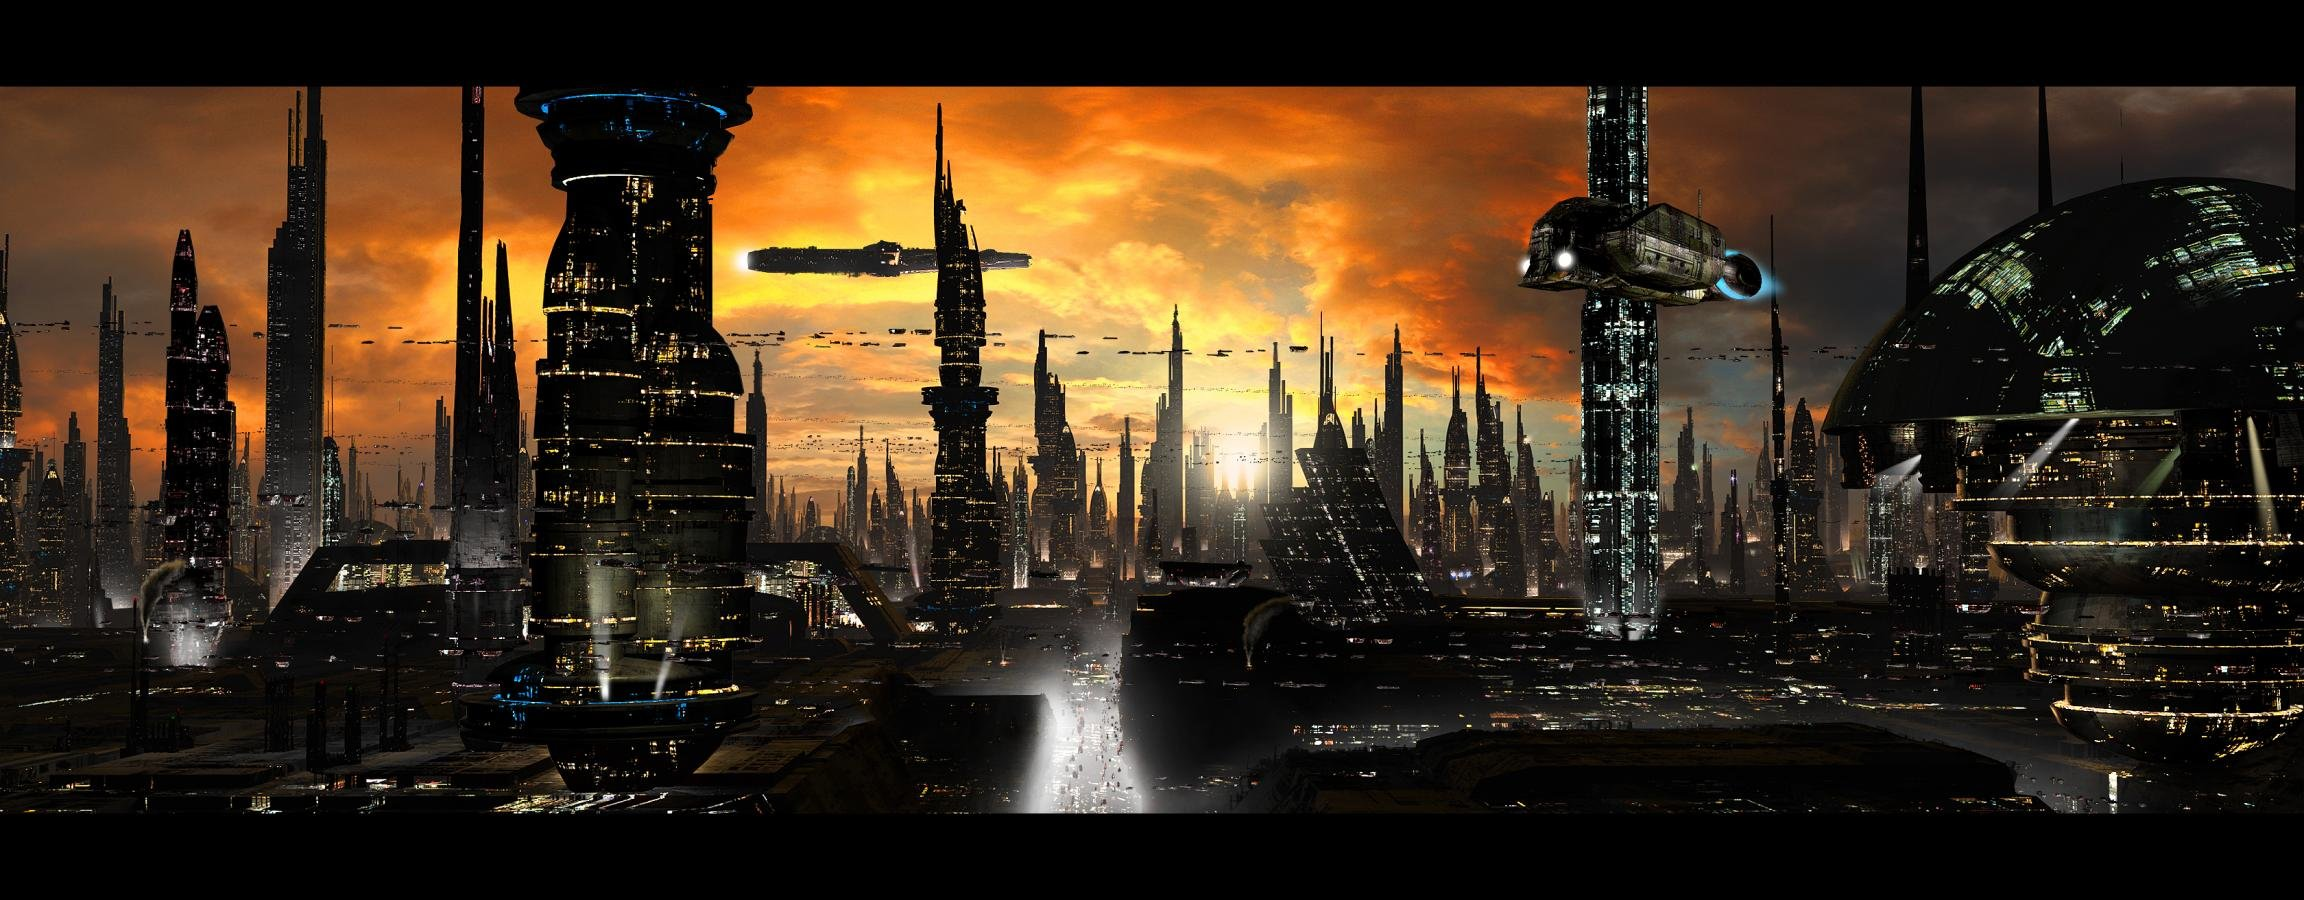 High Resolution Futuristic City Dual Monitor 2304x900 Wallpaper ID87809 For Computer